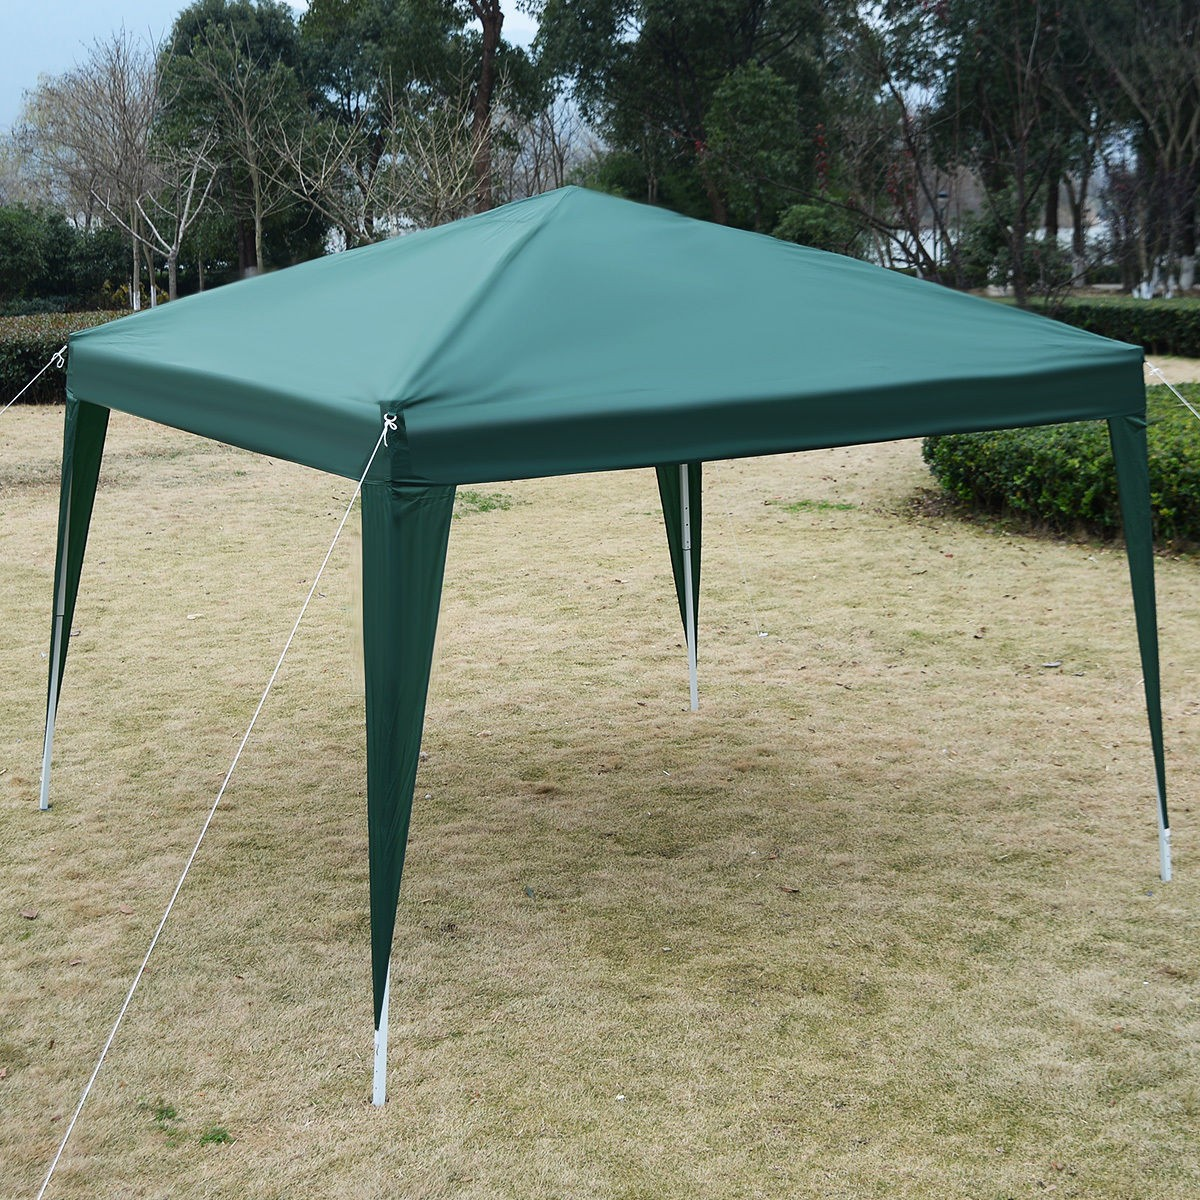 10 10 Gazebos Canopies : Ez pop up canopy tent gazebo